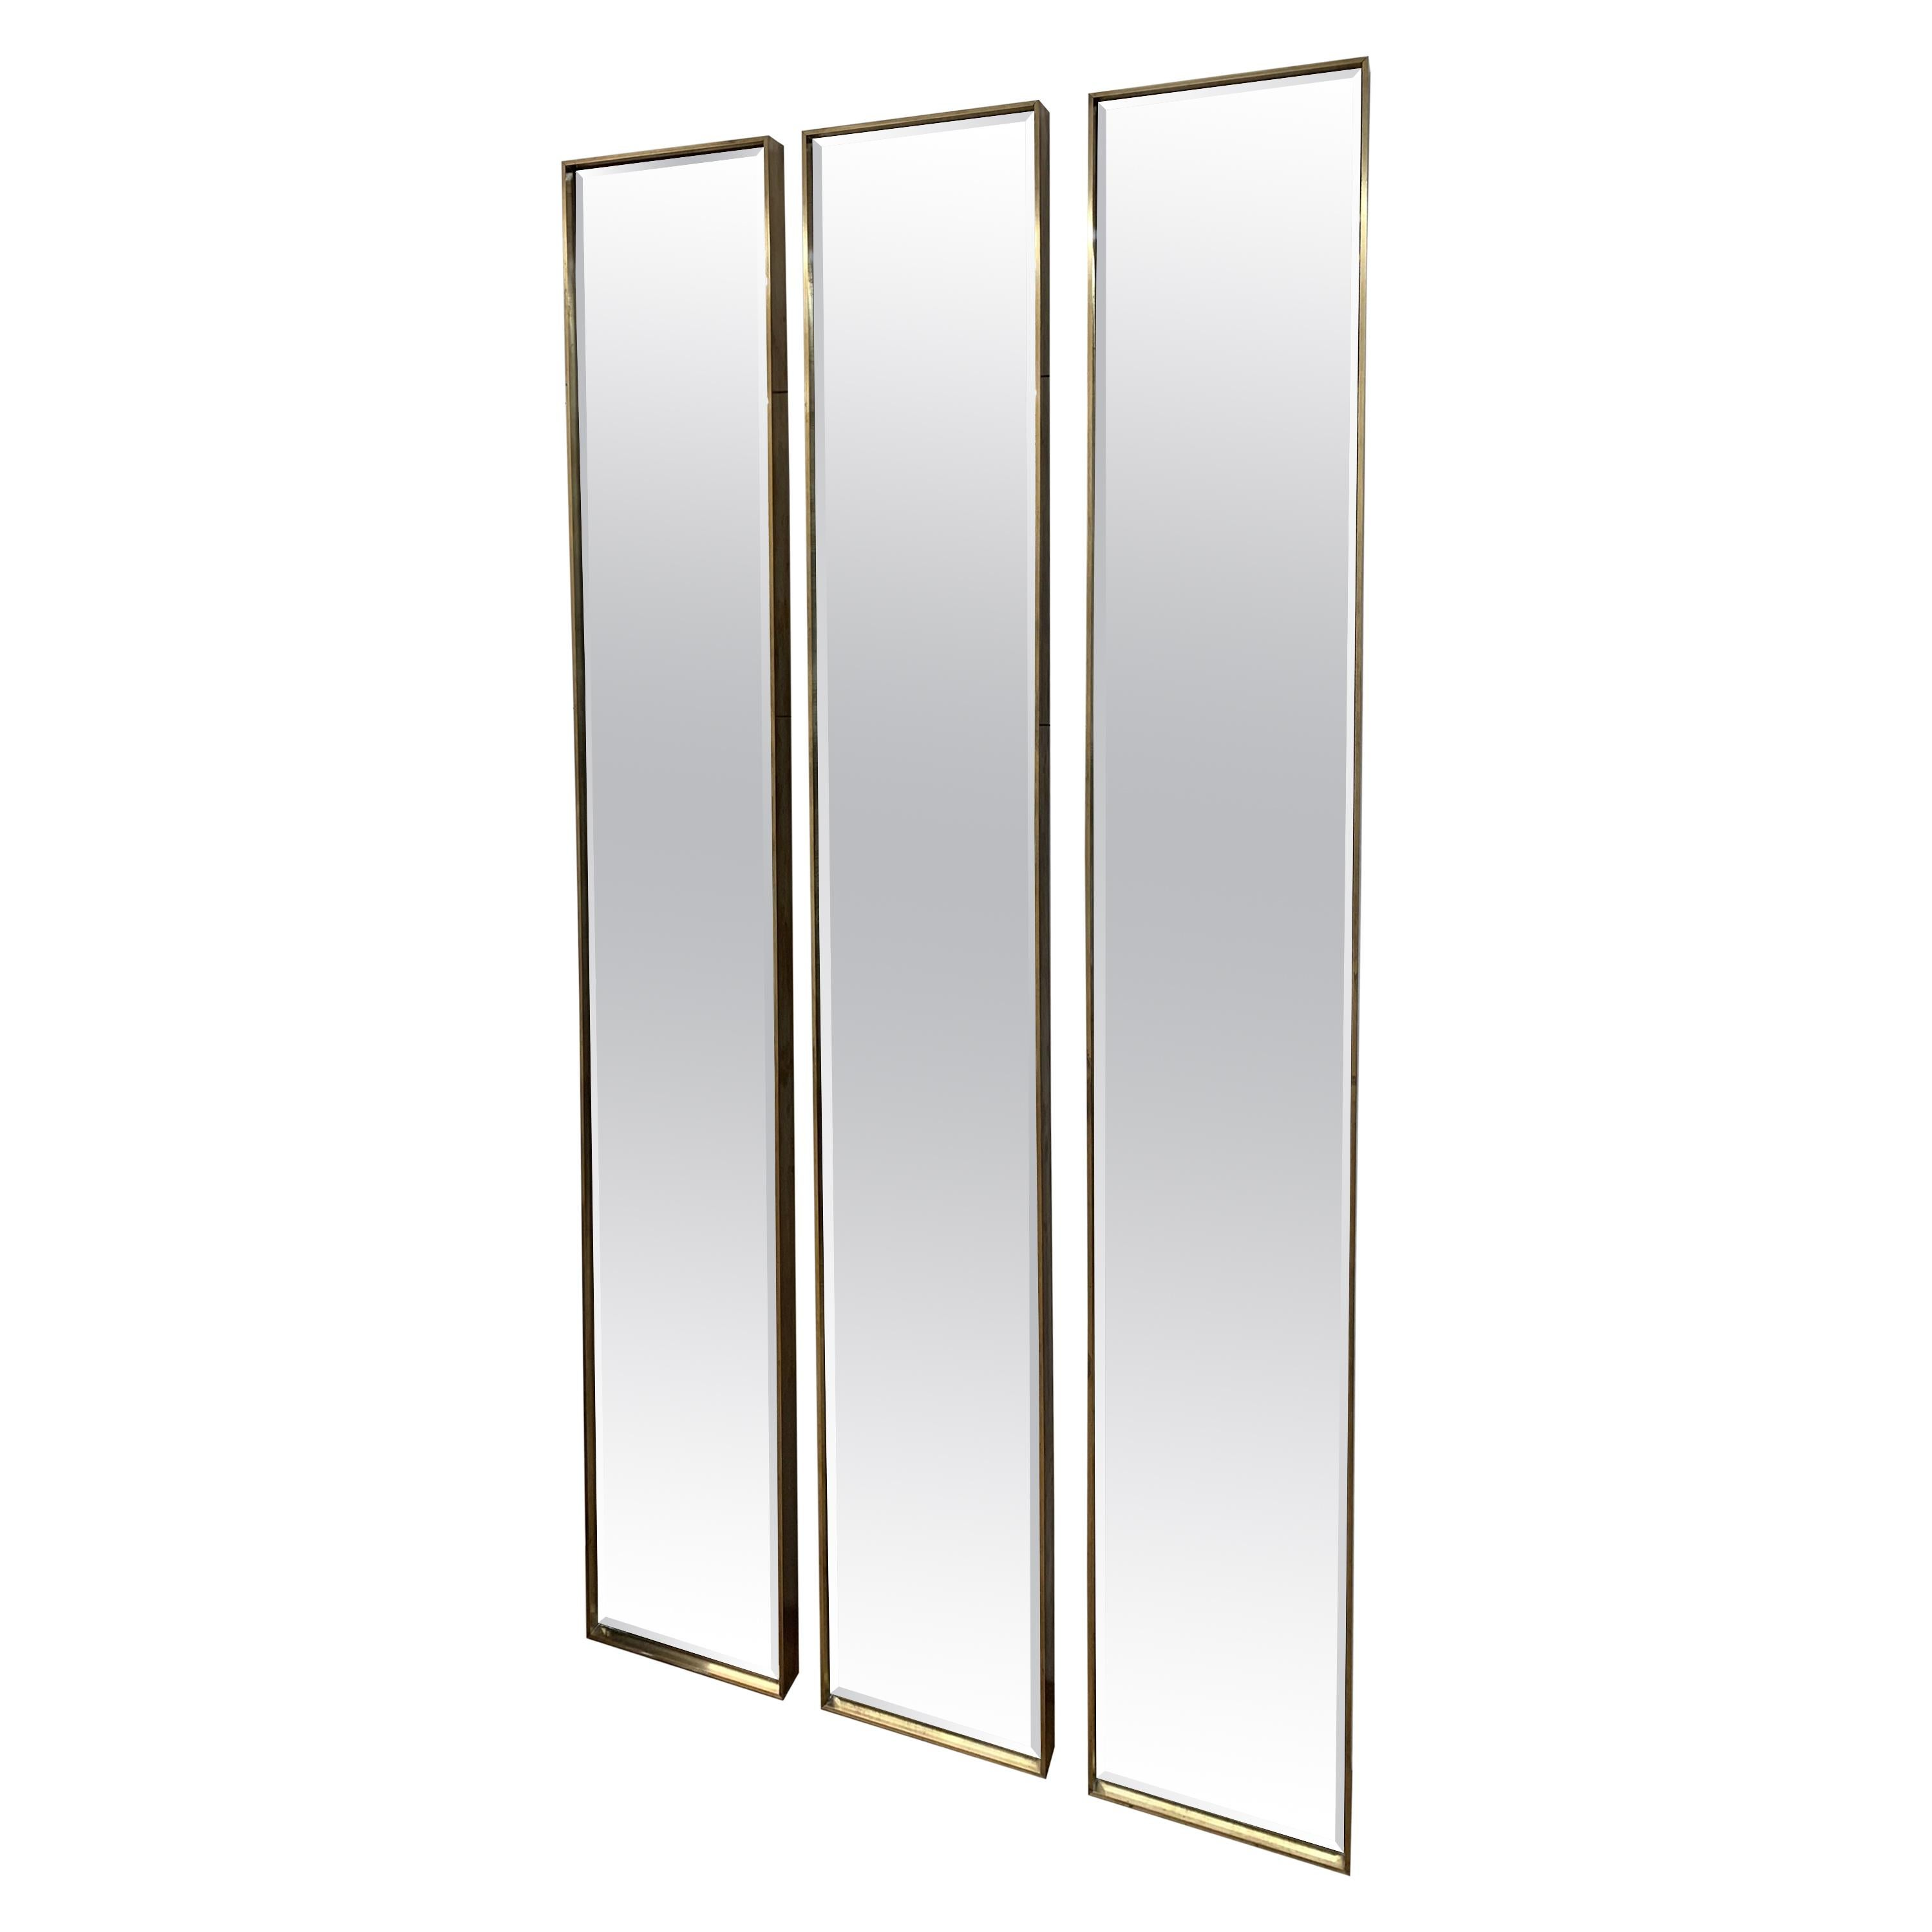 Art Deco Style Eros Slim Brass Mirror with Antique Mirror with Bevelling Detail